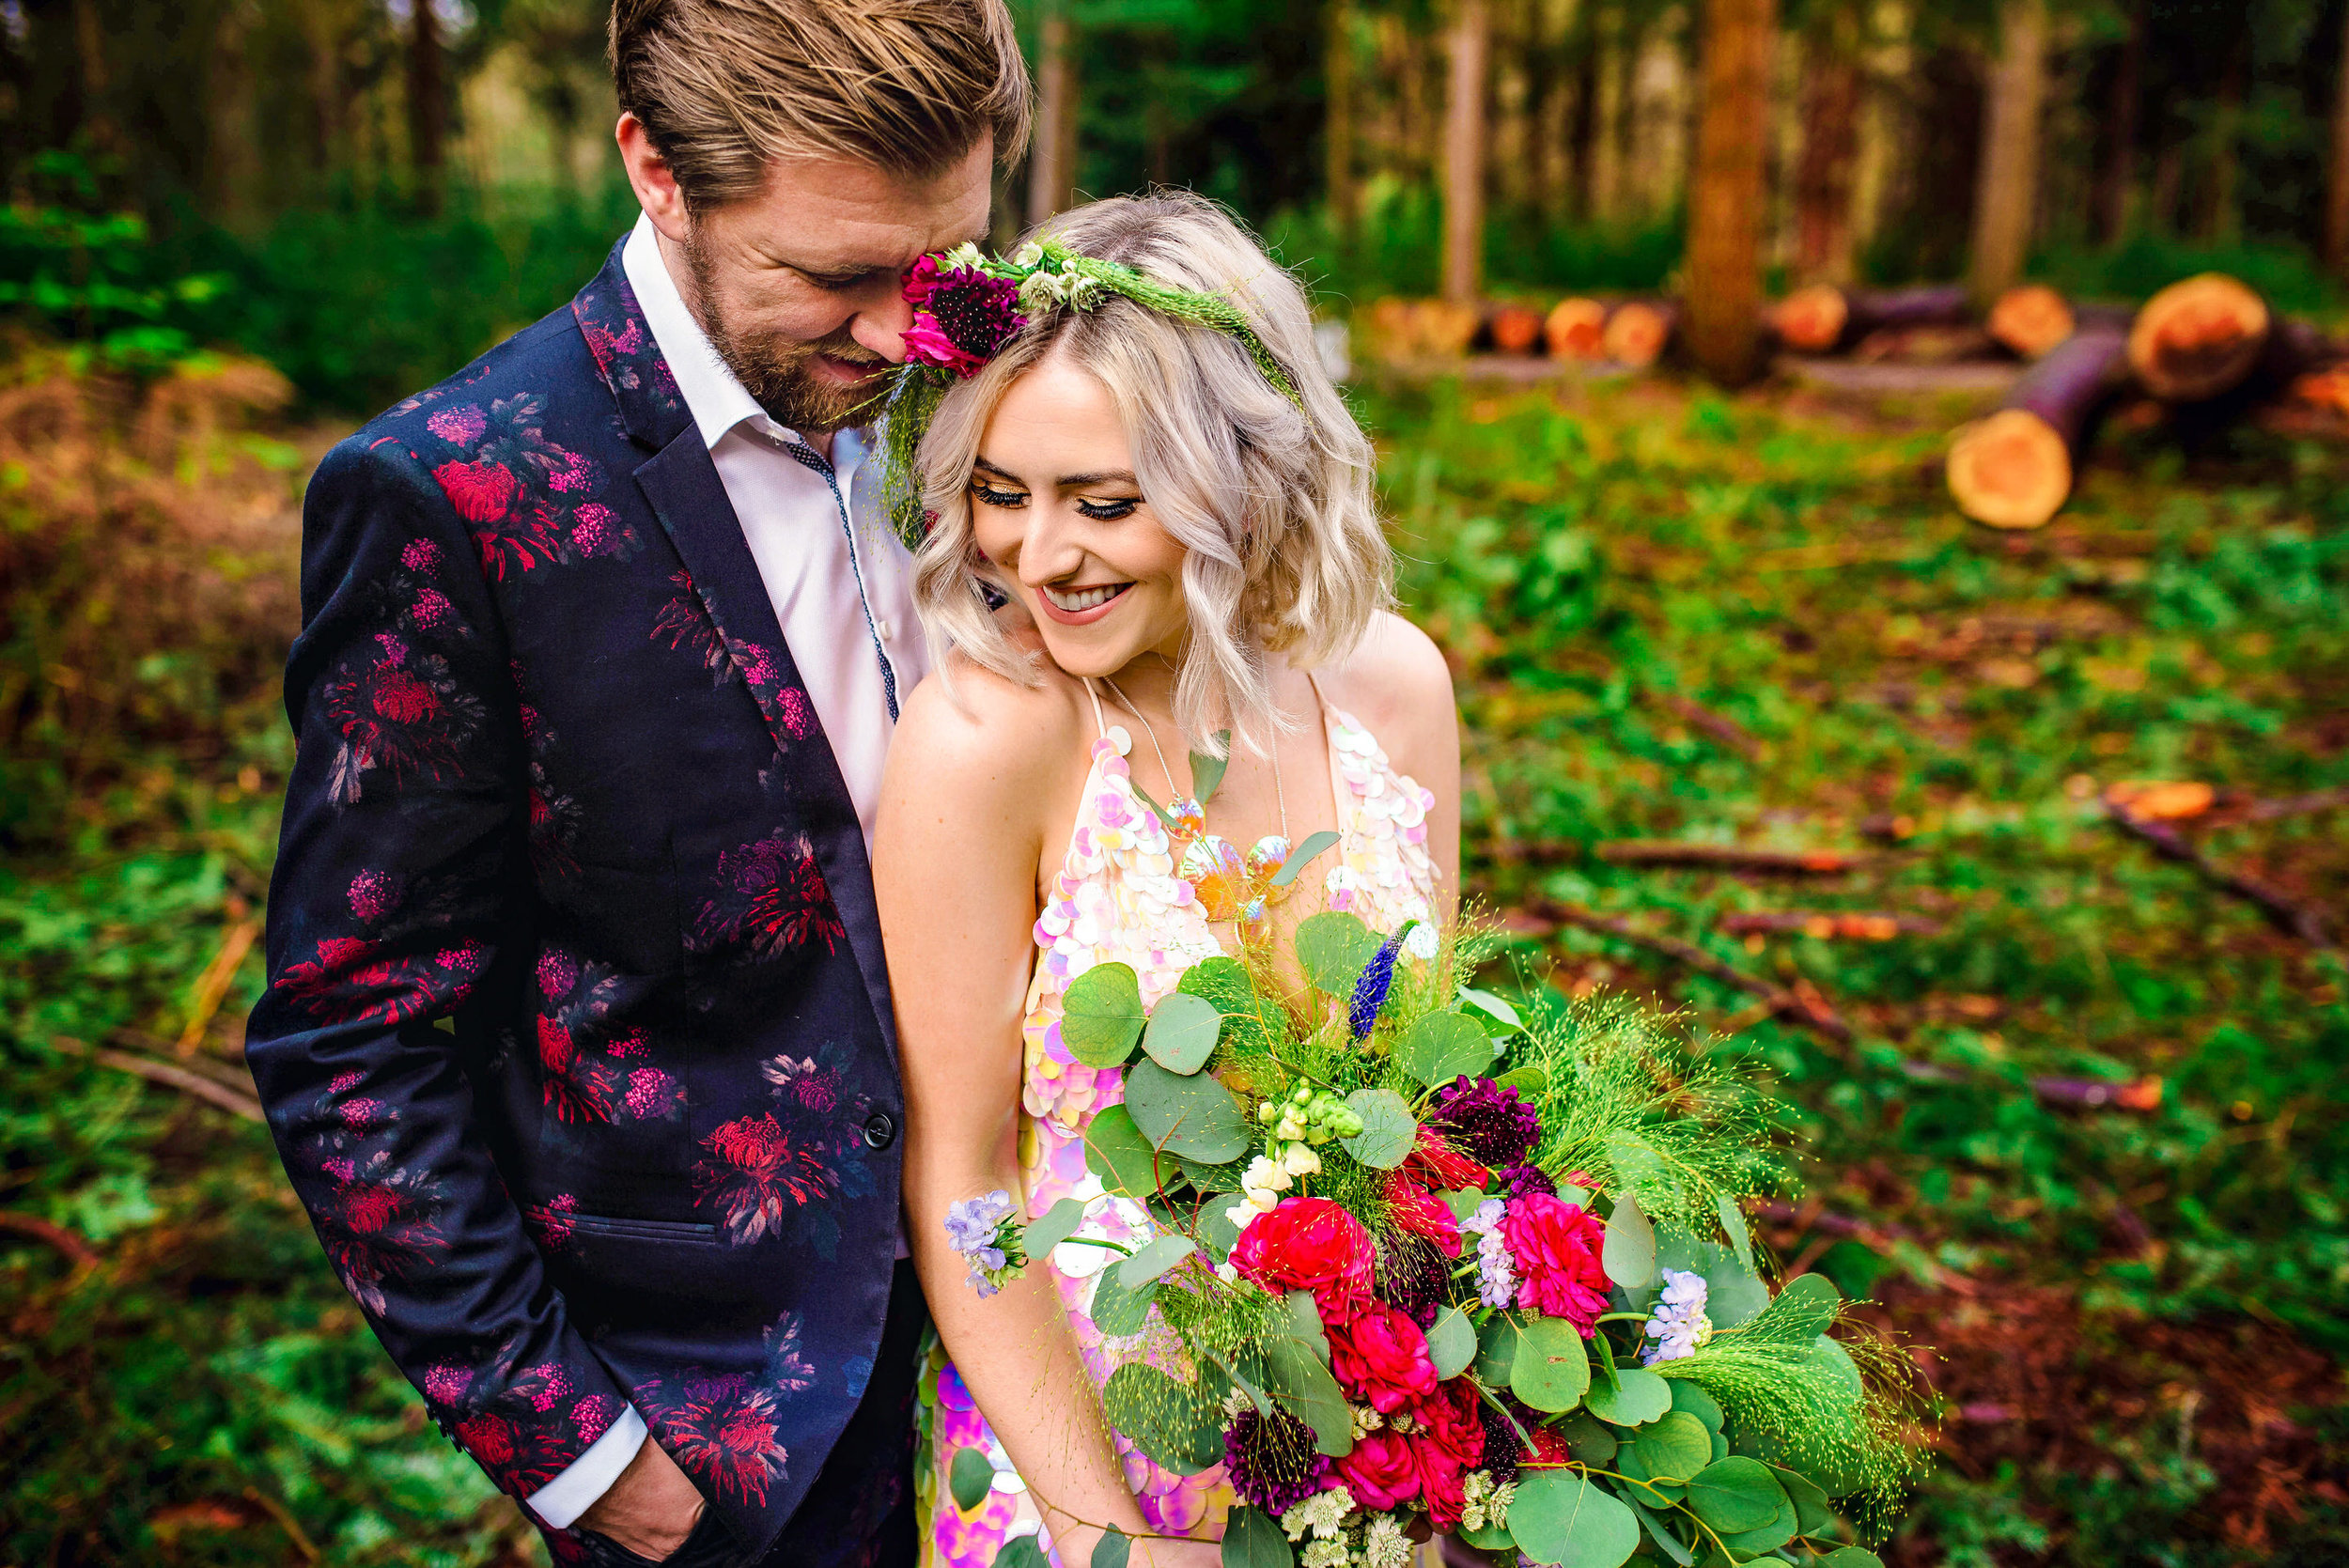 Colourful Wedding Photographer - Photography by Vicki 00003.jpg